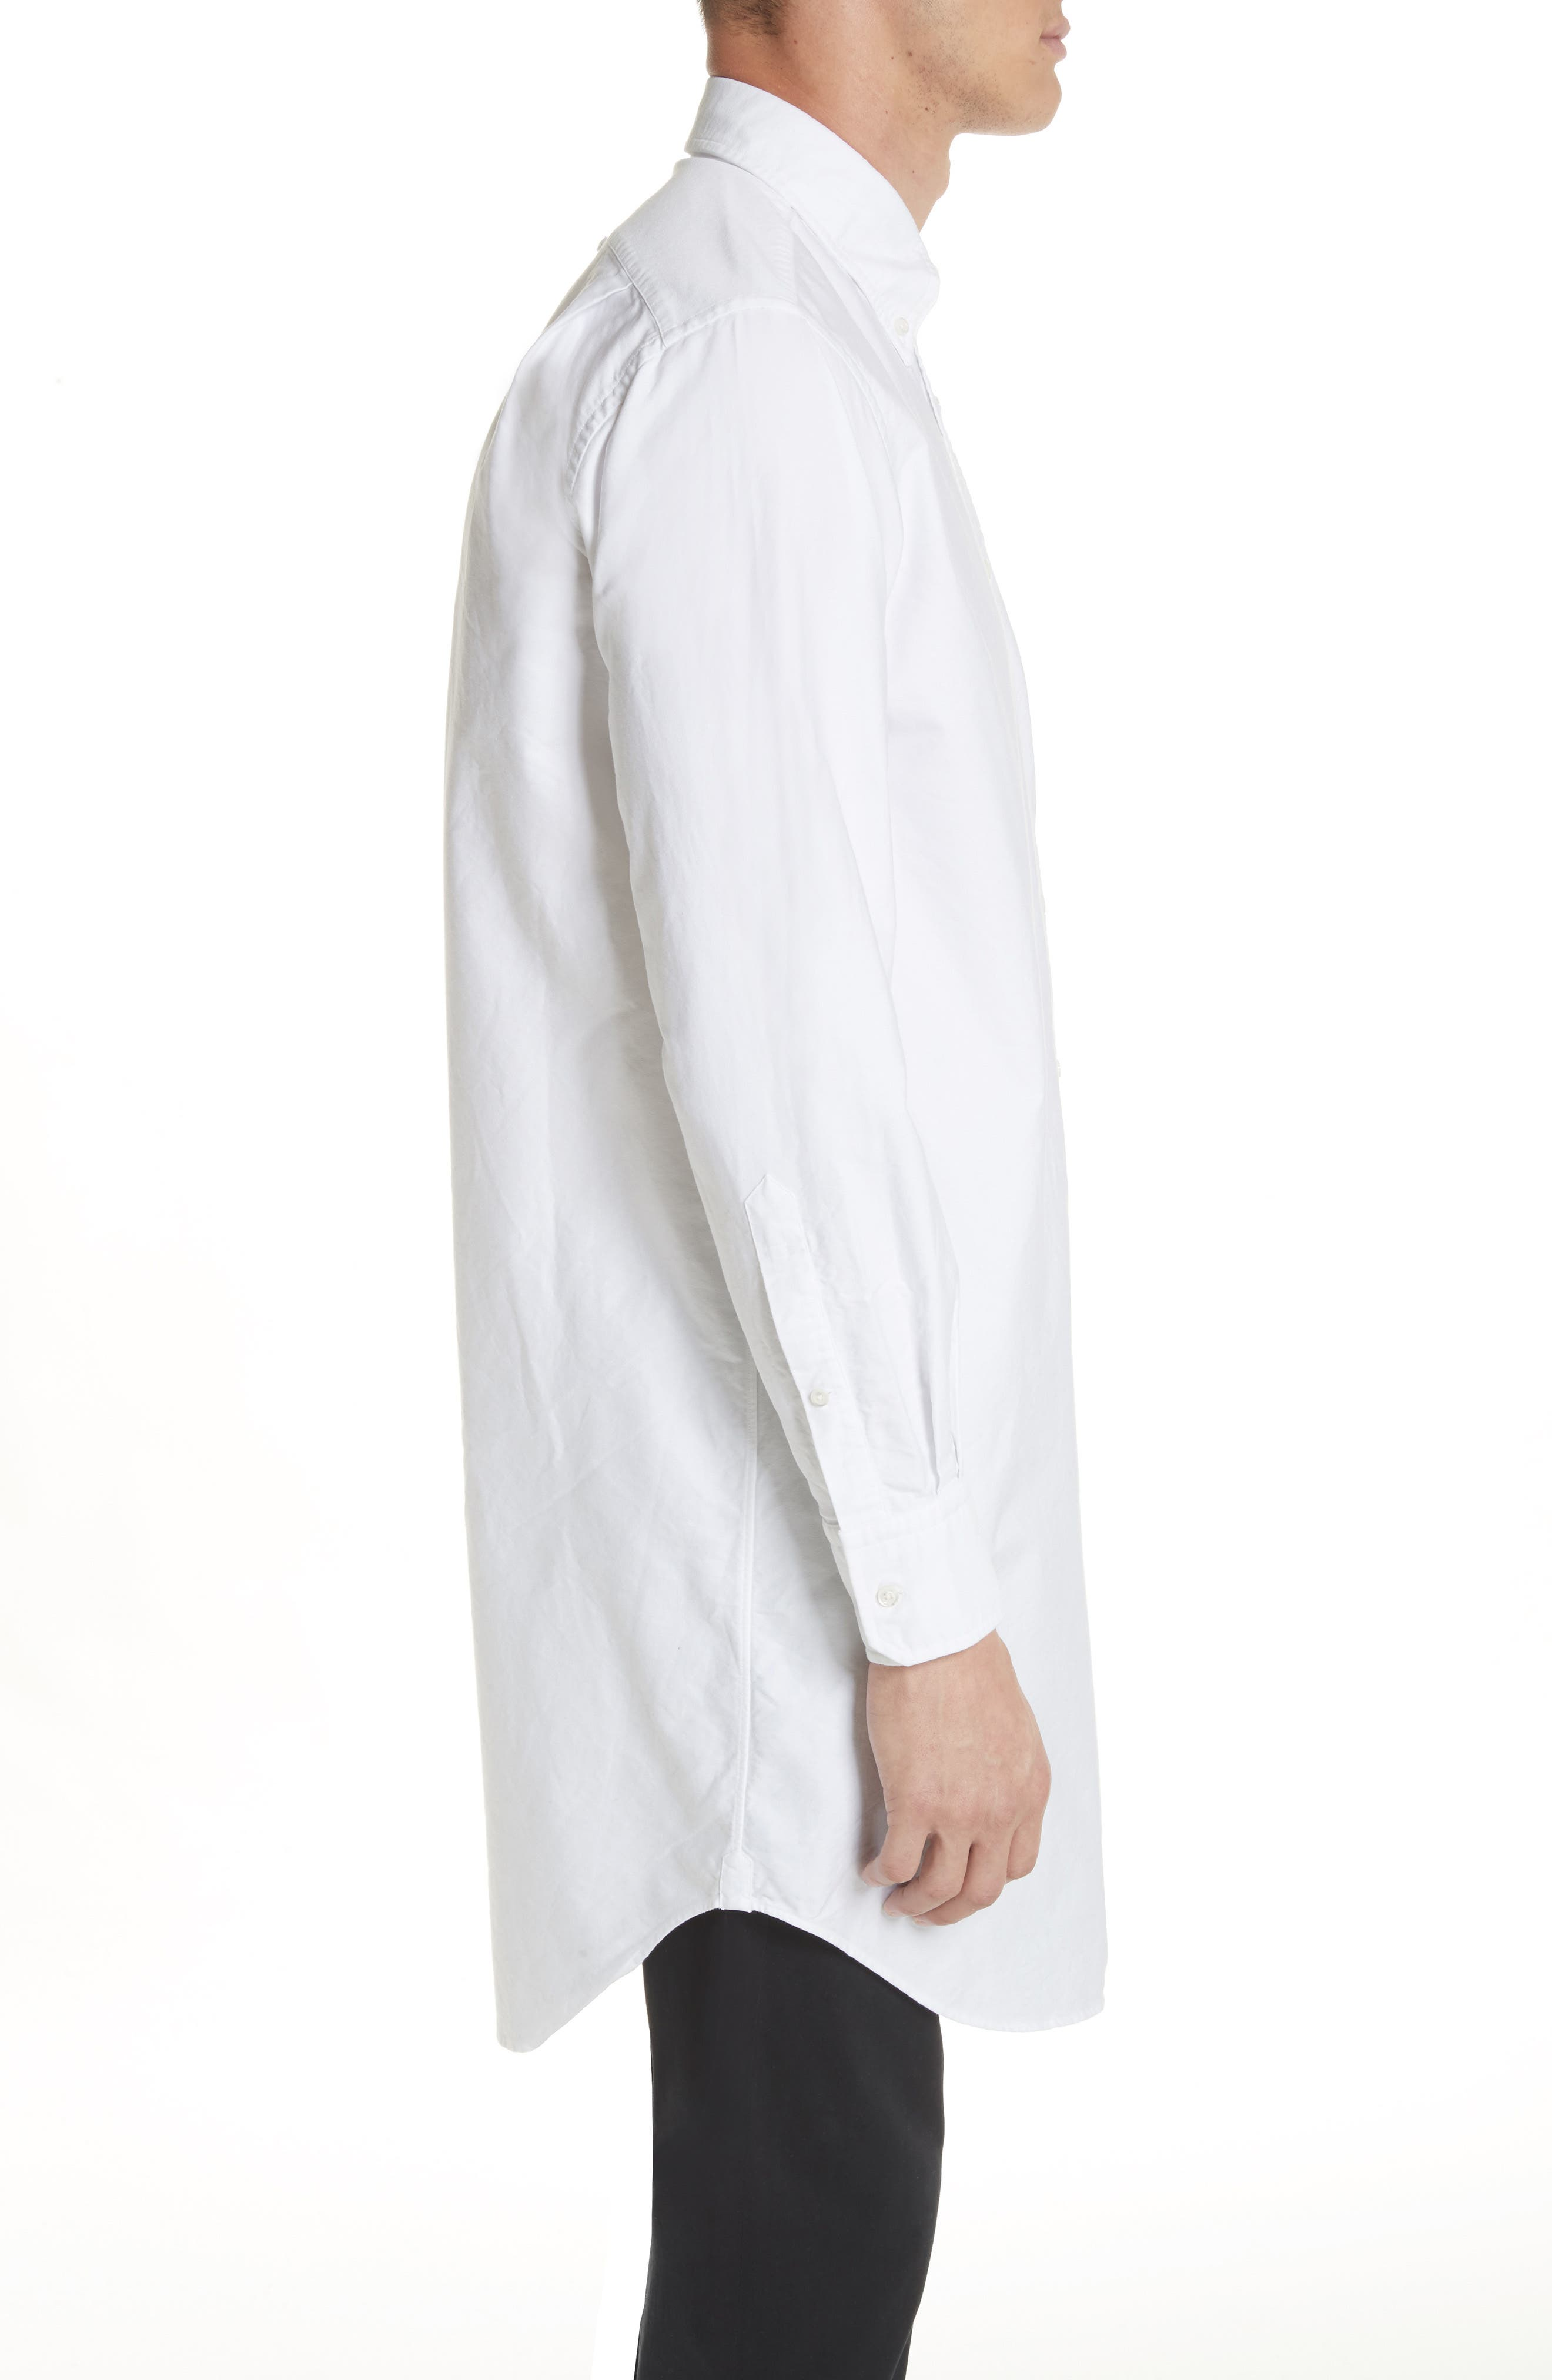 Elongated Woven Shirt,                             Alternate thumbnail 4, color,                             White